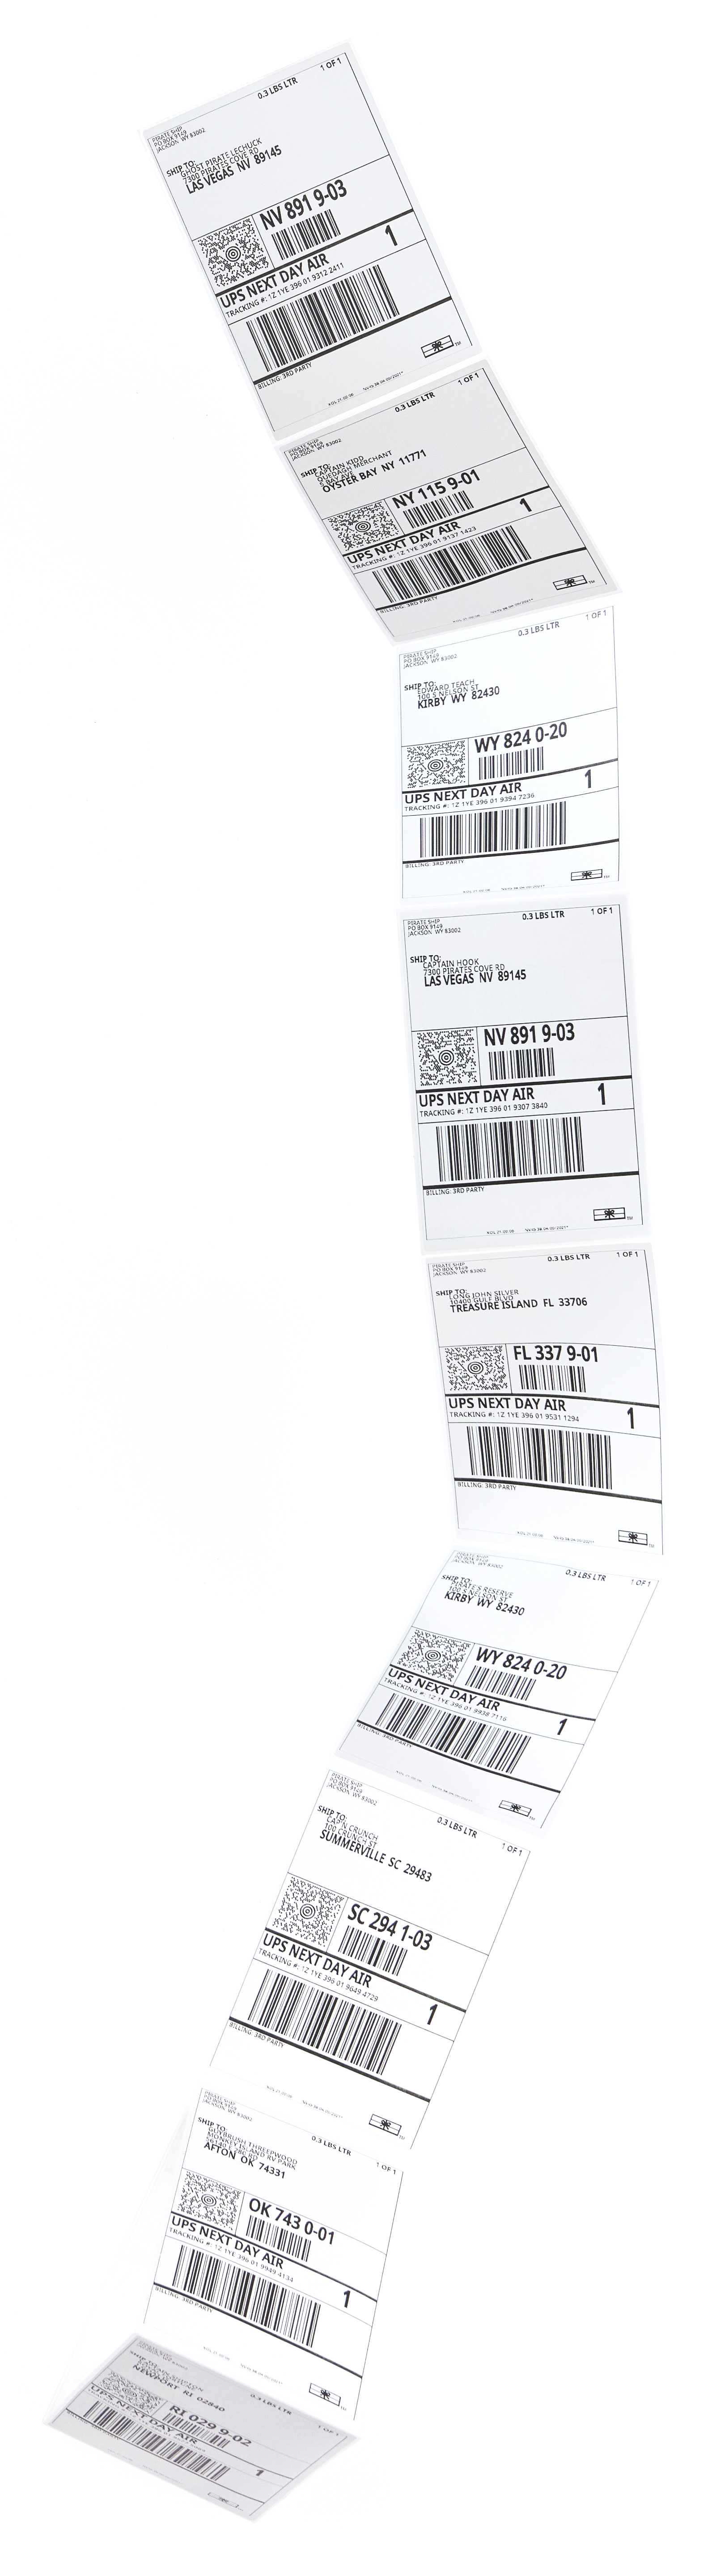 UPS Next Day Air rate shipping labels